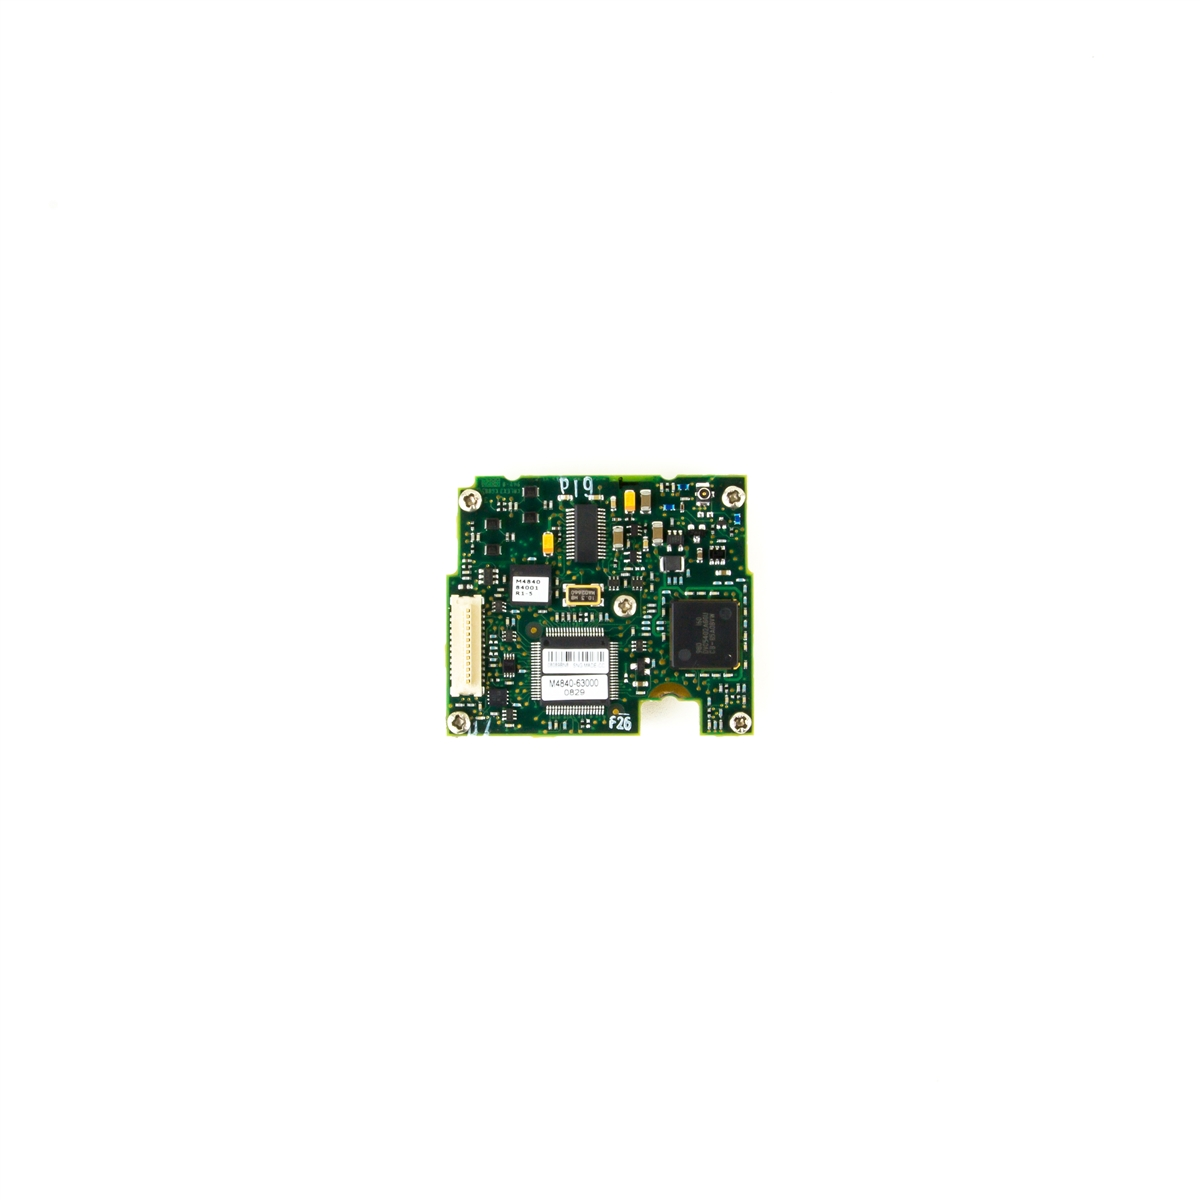 Philips IntelliVue M4841A TRx+ Telemetry Transmitter S01 S02 S03 RF Radio Module Circuit Board PC Assembly 1.4 GHz